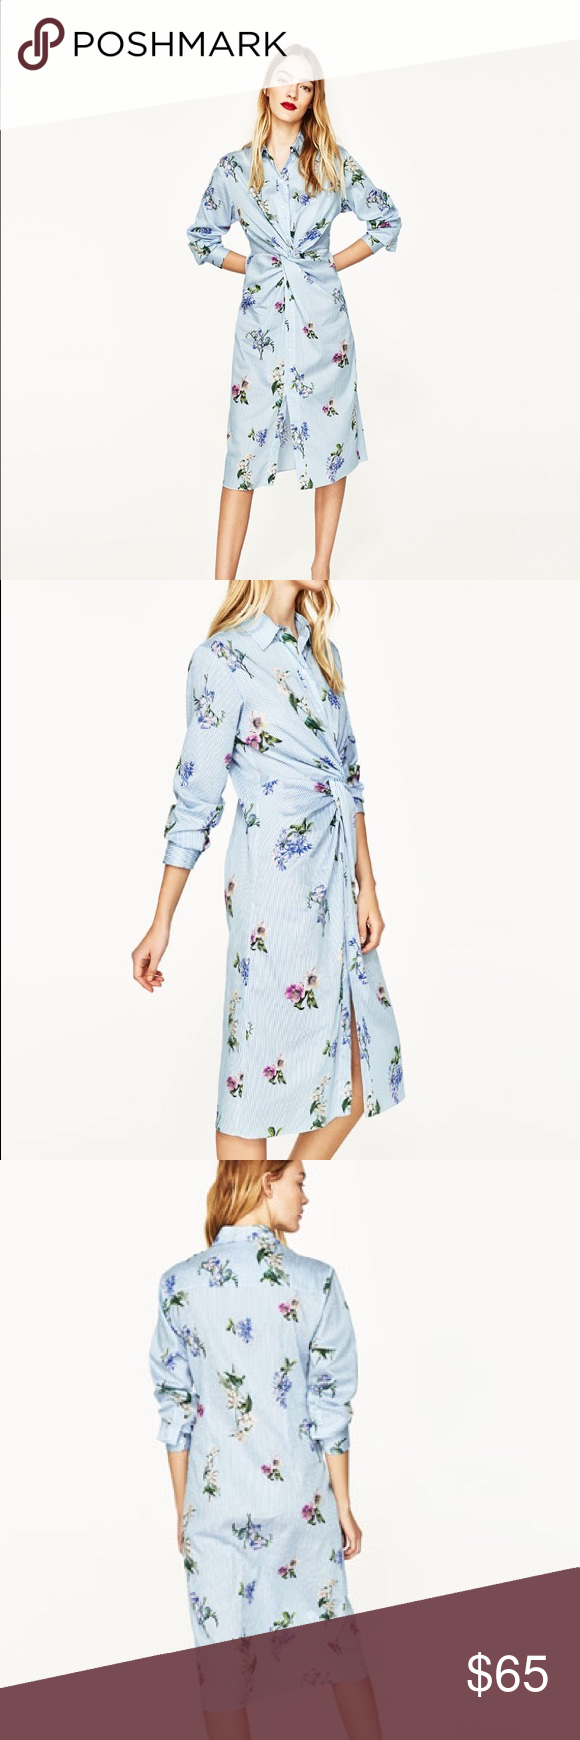 Zara Flower And Stripe Shirt Dress Nwt Pinterest Flower Prints